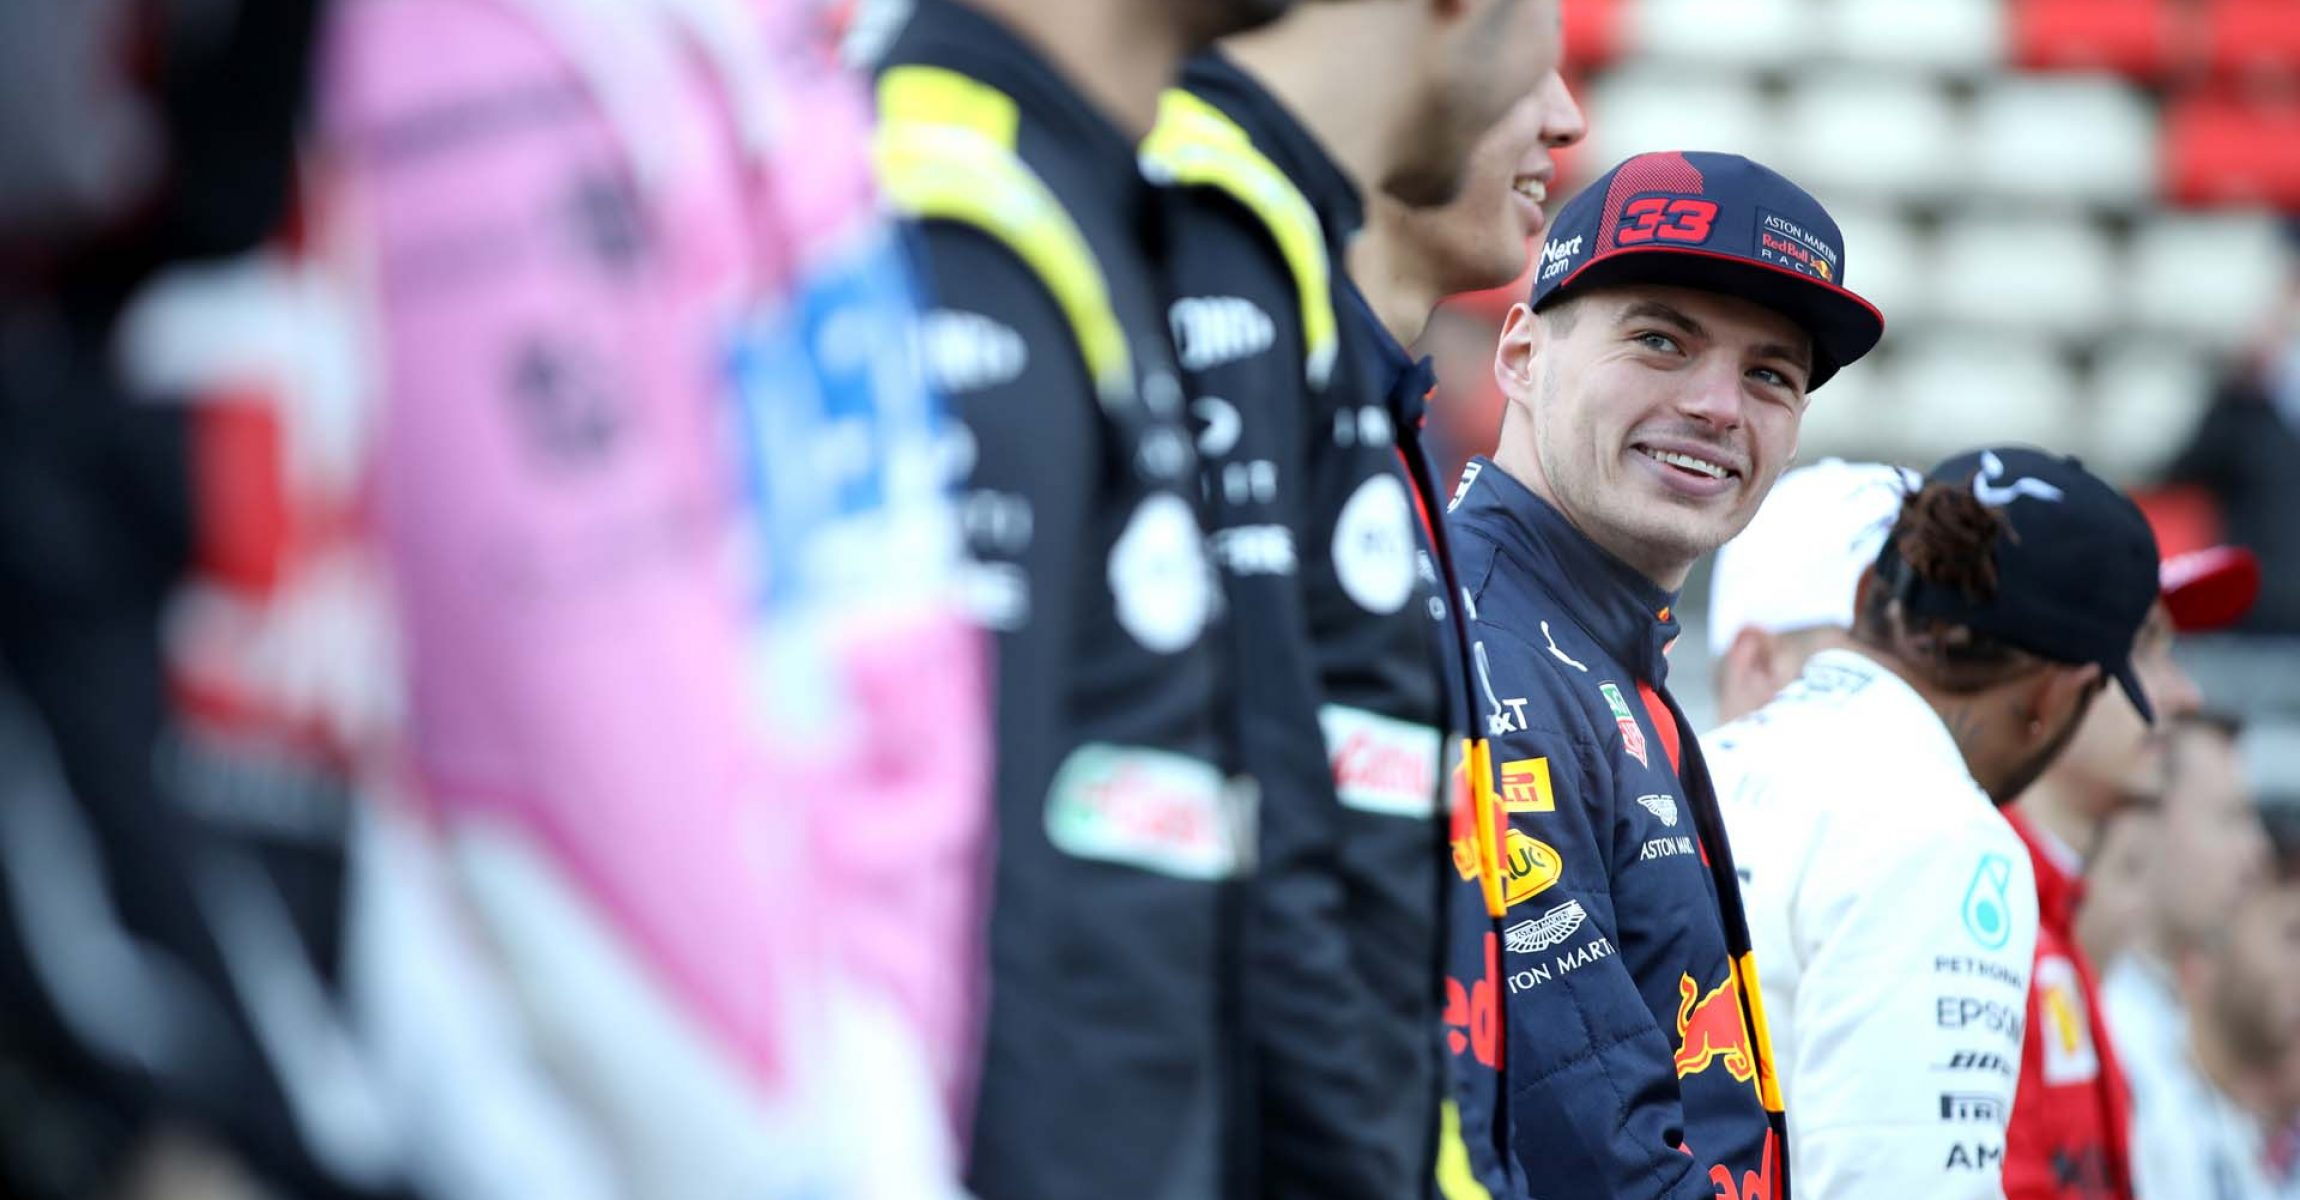 BARCELONA, SPAIN - FEBRUARY 19: Max Verstappen of Netherlands and Red Bull Racing looks on as drivers line up on the grid for a photo prior to day one of Formula 1 Winter Testing at Circuit de Barcelona-Catalunya on February 19, 2020 in Barcelona, Spain. (Photo by Mark Thompson/Getty Images) // Getty Images / Red Bull Content Pool  // AP-235K3D3NS2111 // Usage for editorial use only //